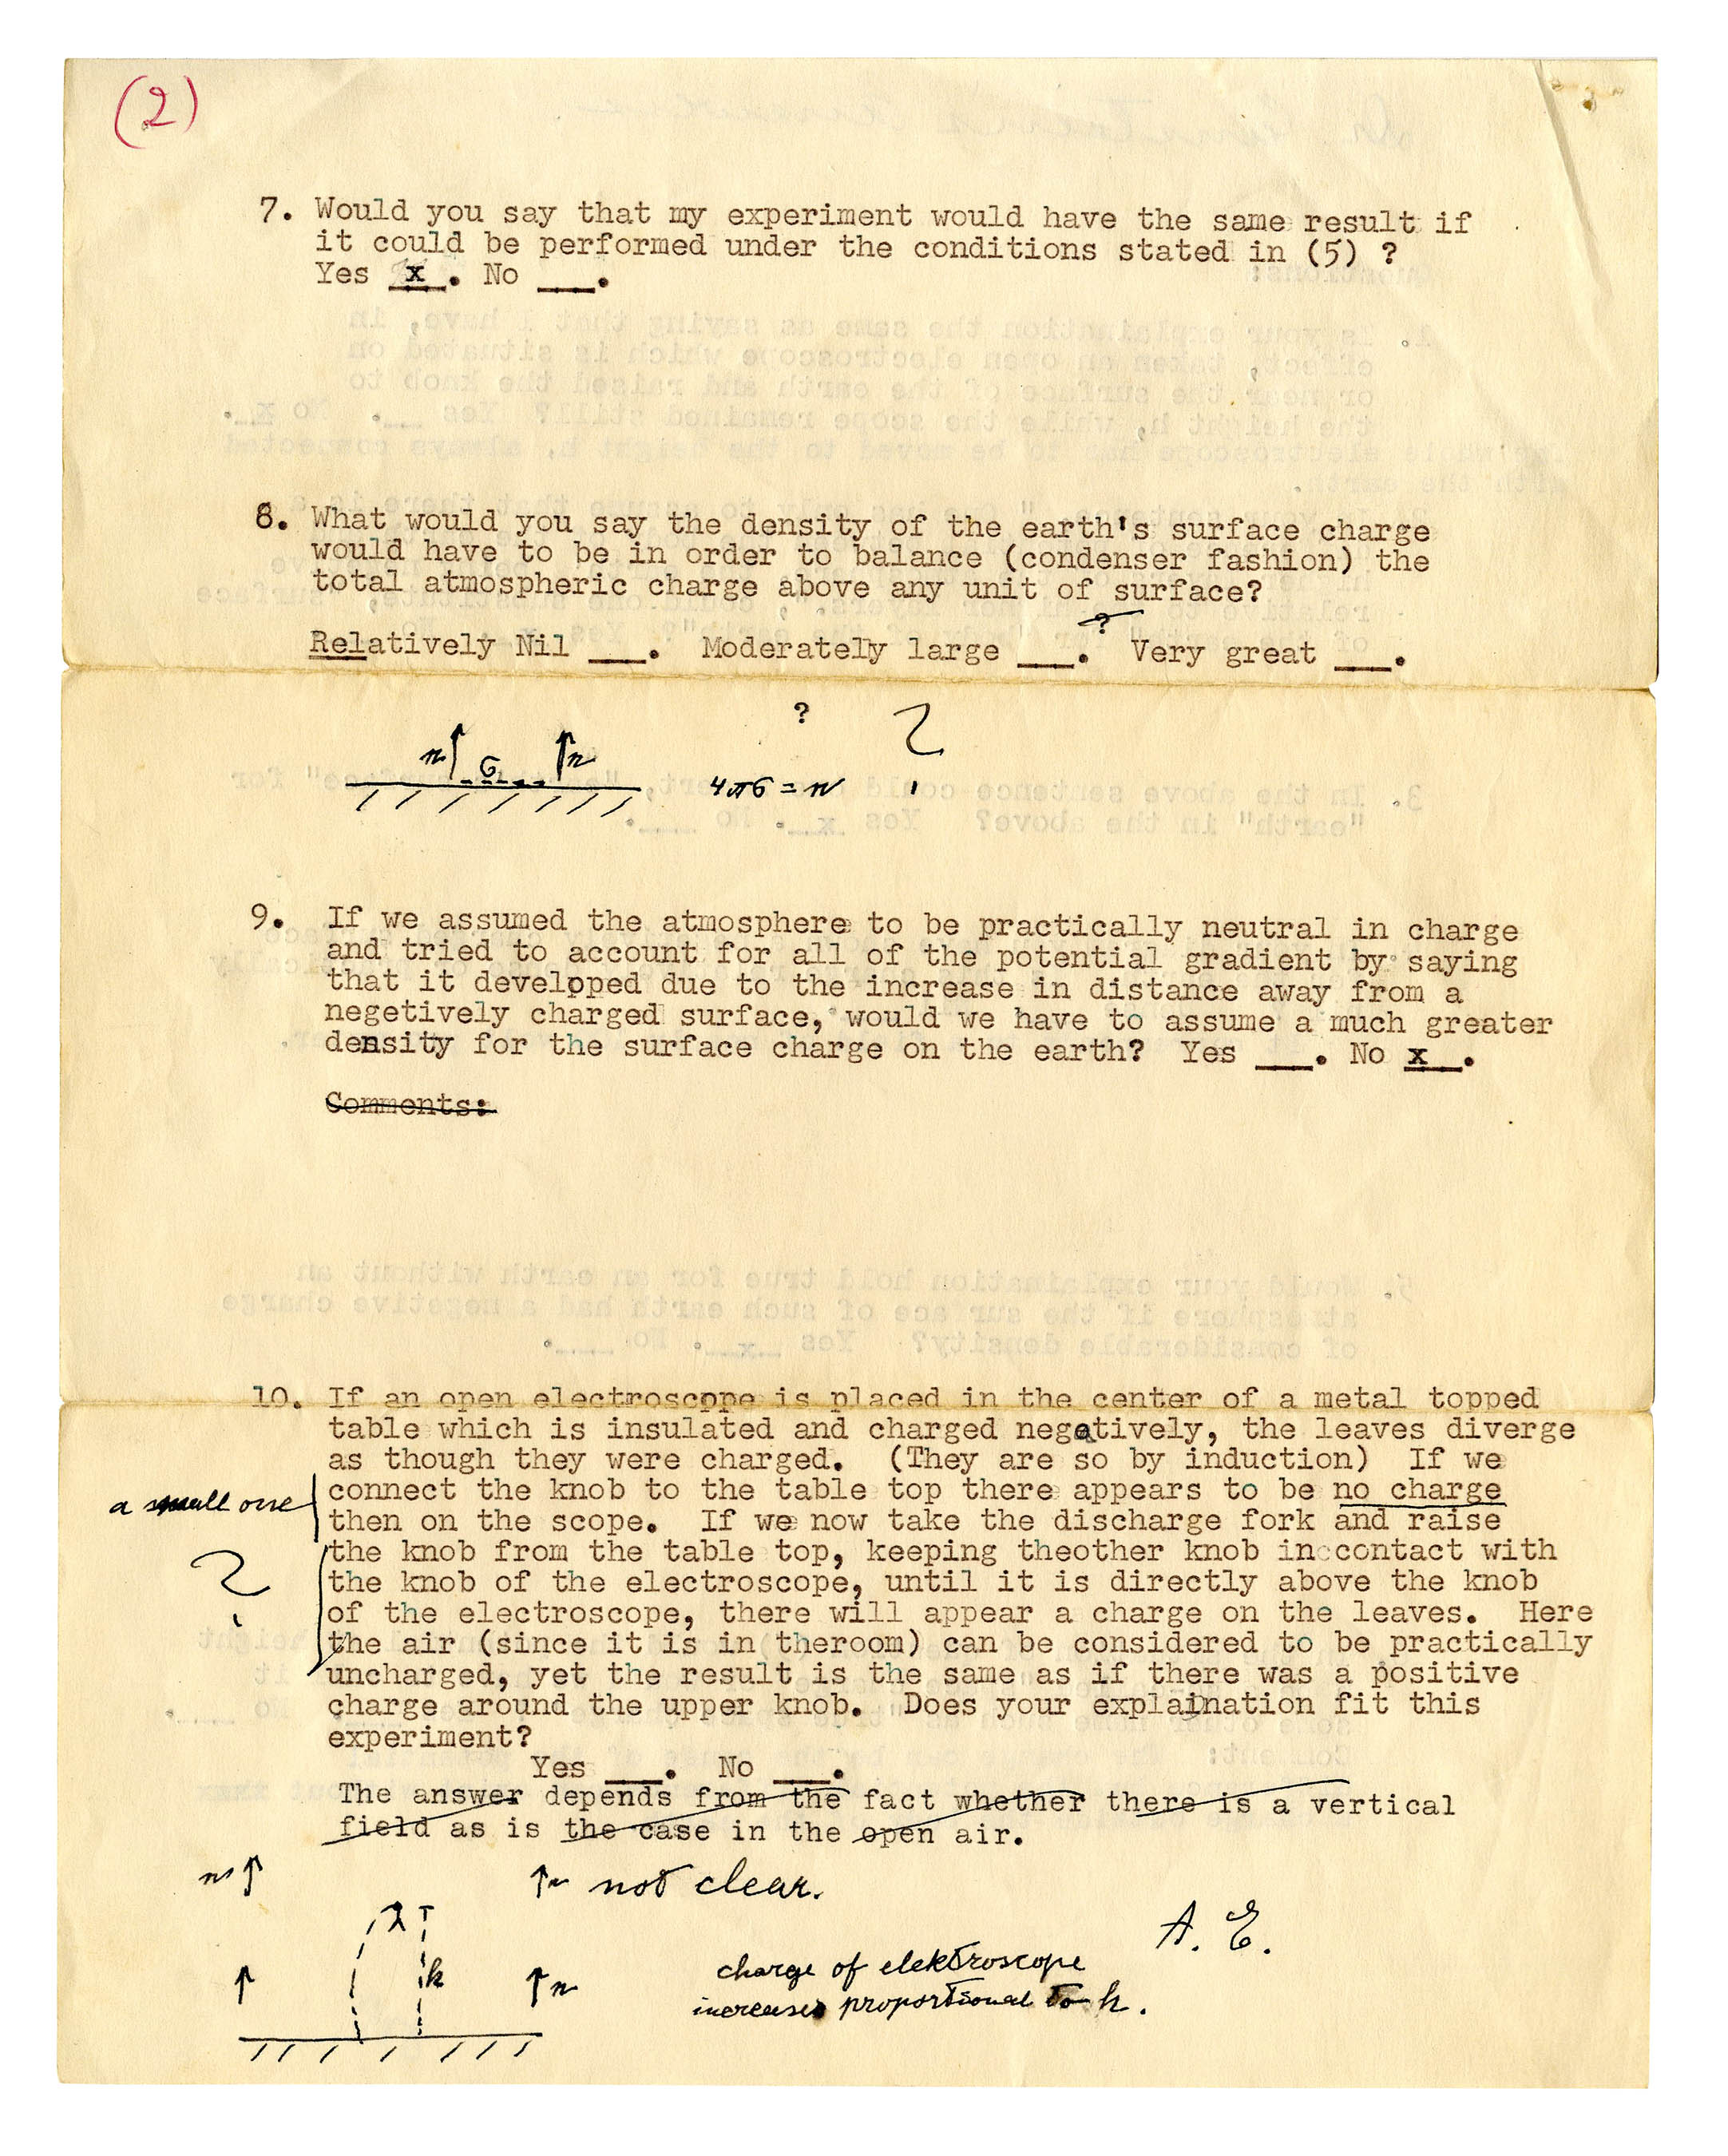 Albert Einstein Autograph Remarkable Letter Signed By Albert Einstein,  Along With His Initialed Drawings -